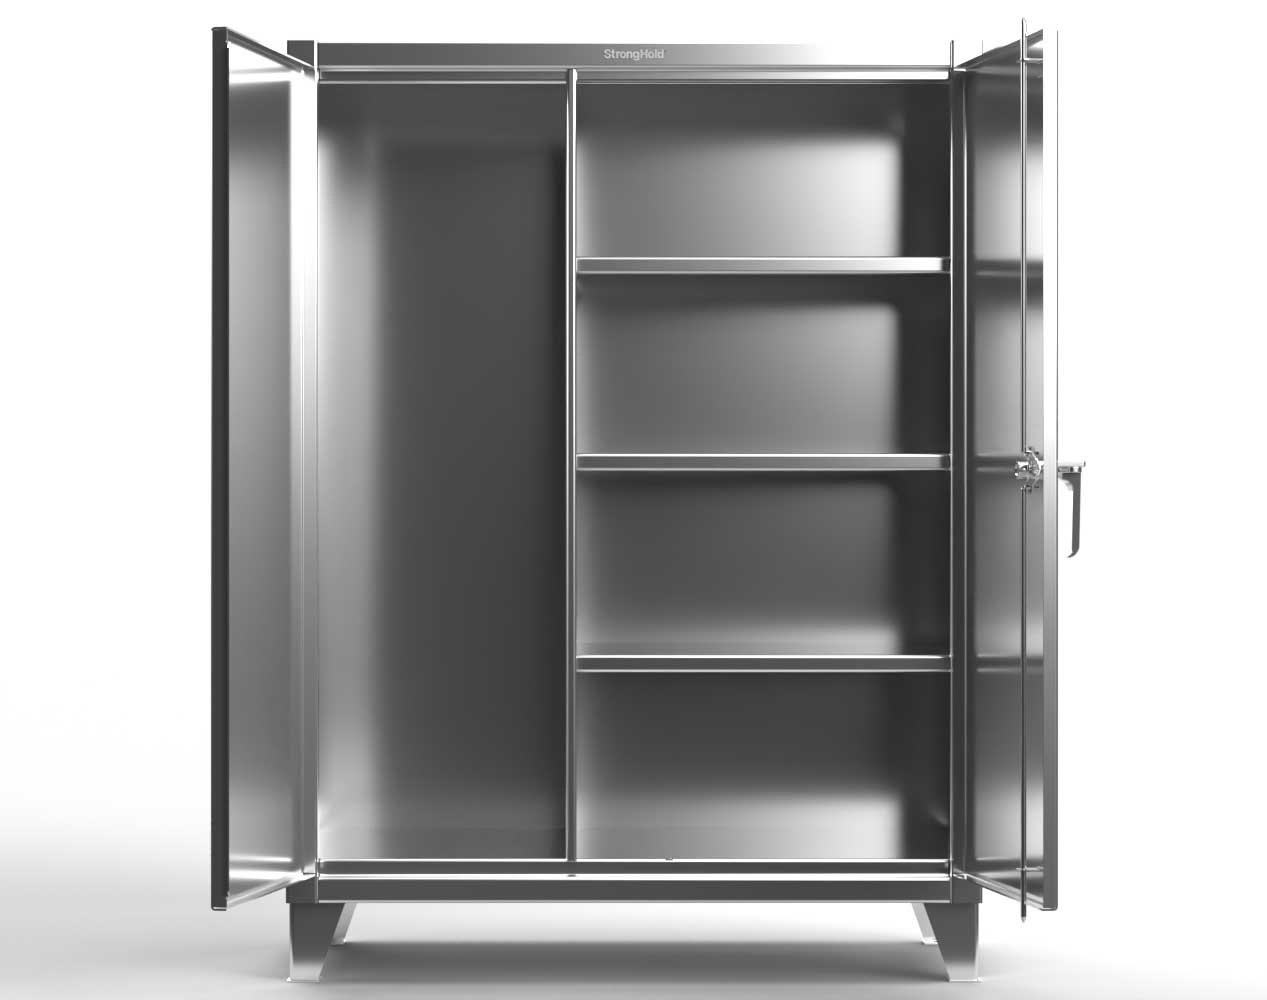 Extreme Duty 12 GA Stainless Steel Janitorial Cabinet with 3 Shelves – 72 In. W x 24 In. D x 66 In. H